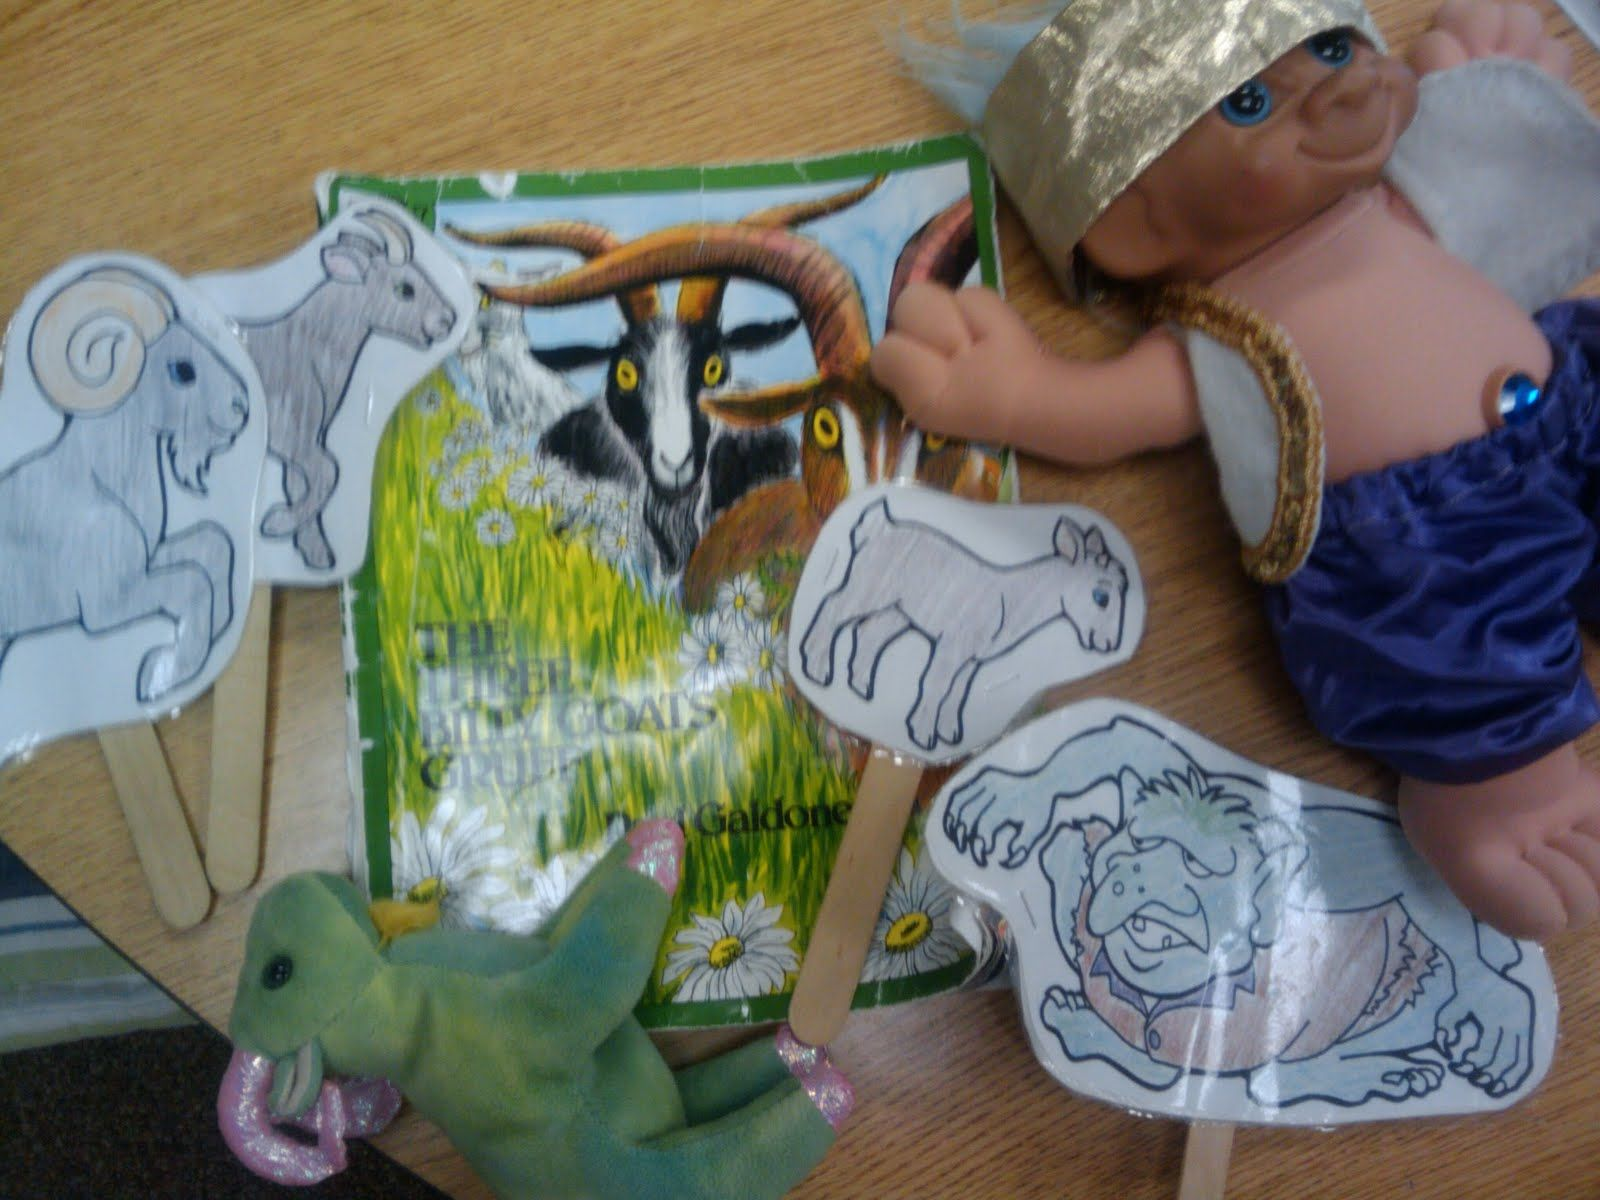 Creating 3 Billy Goats Gruff Props To Help With Retelling Standards K Rl 1 K Rl 2 K Rl 3 Key